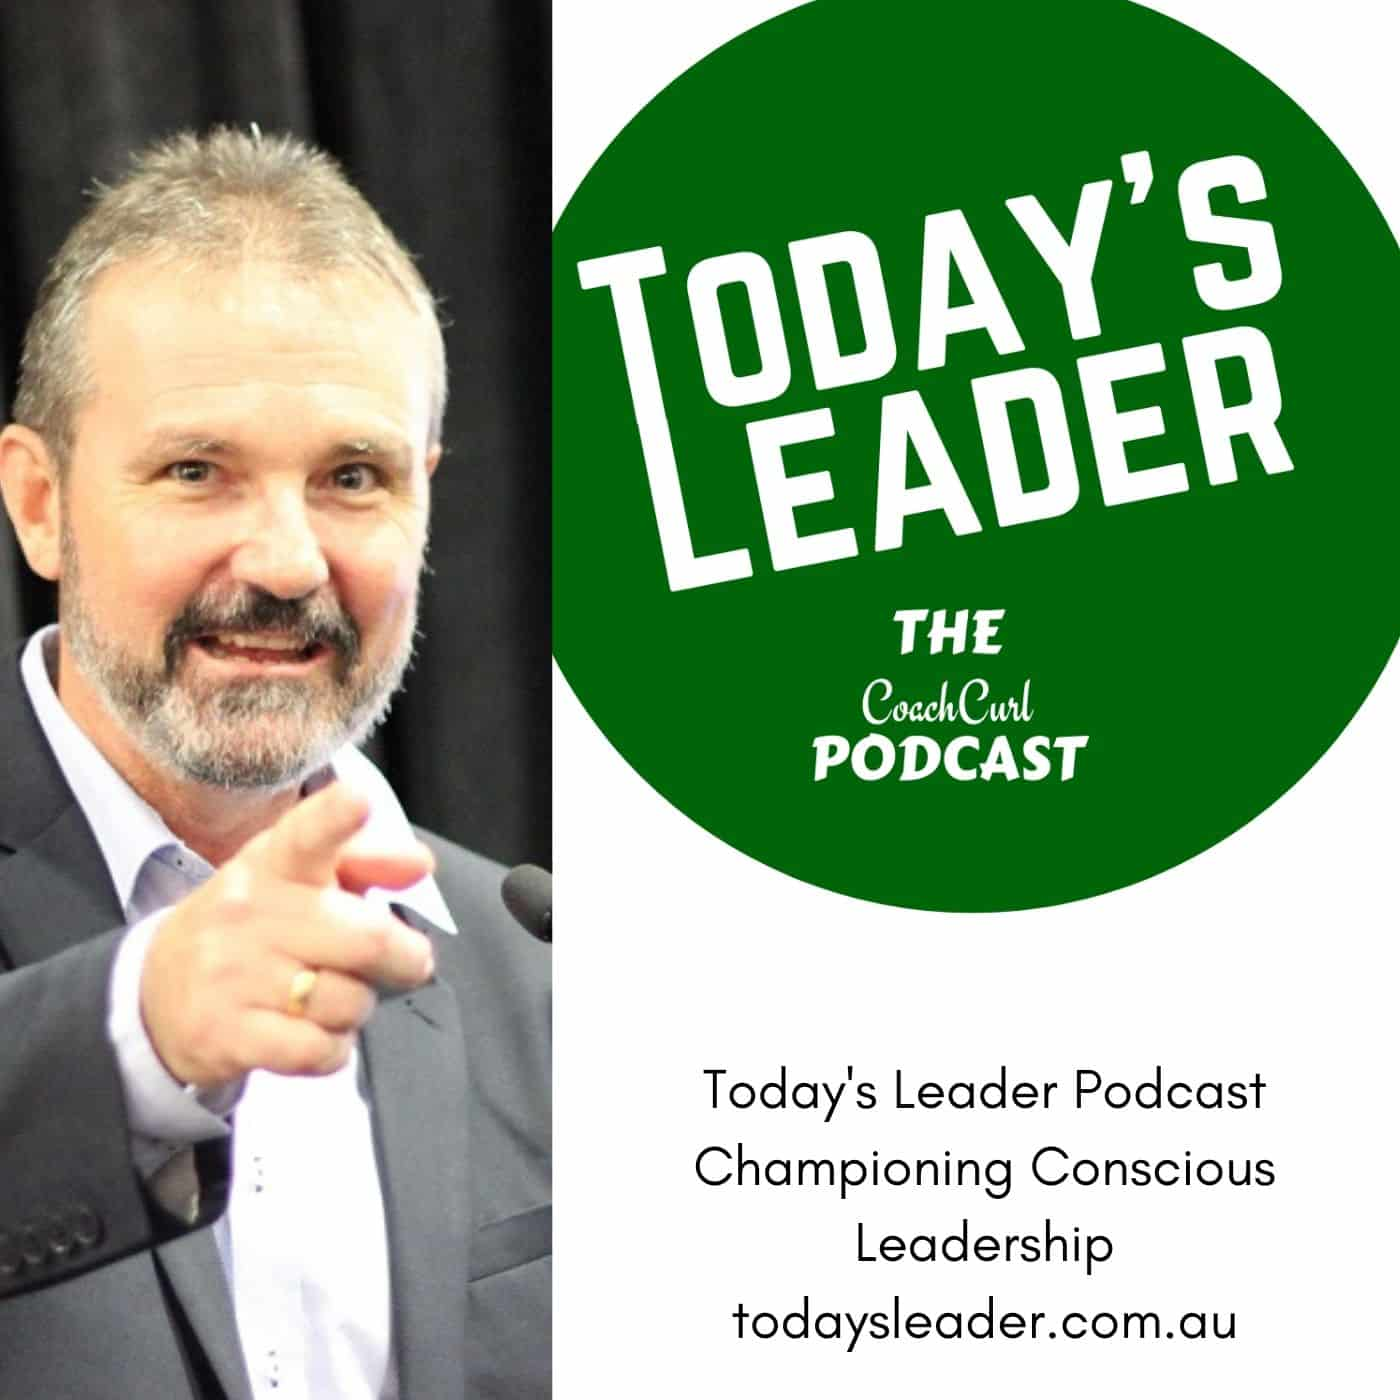 The Today's Leader Podcast